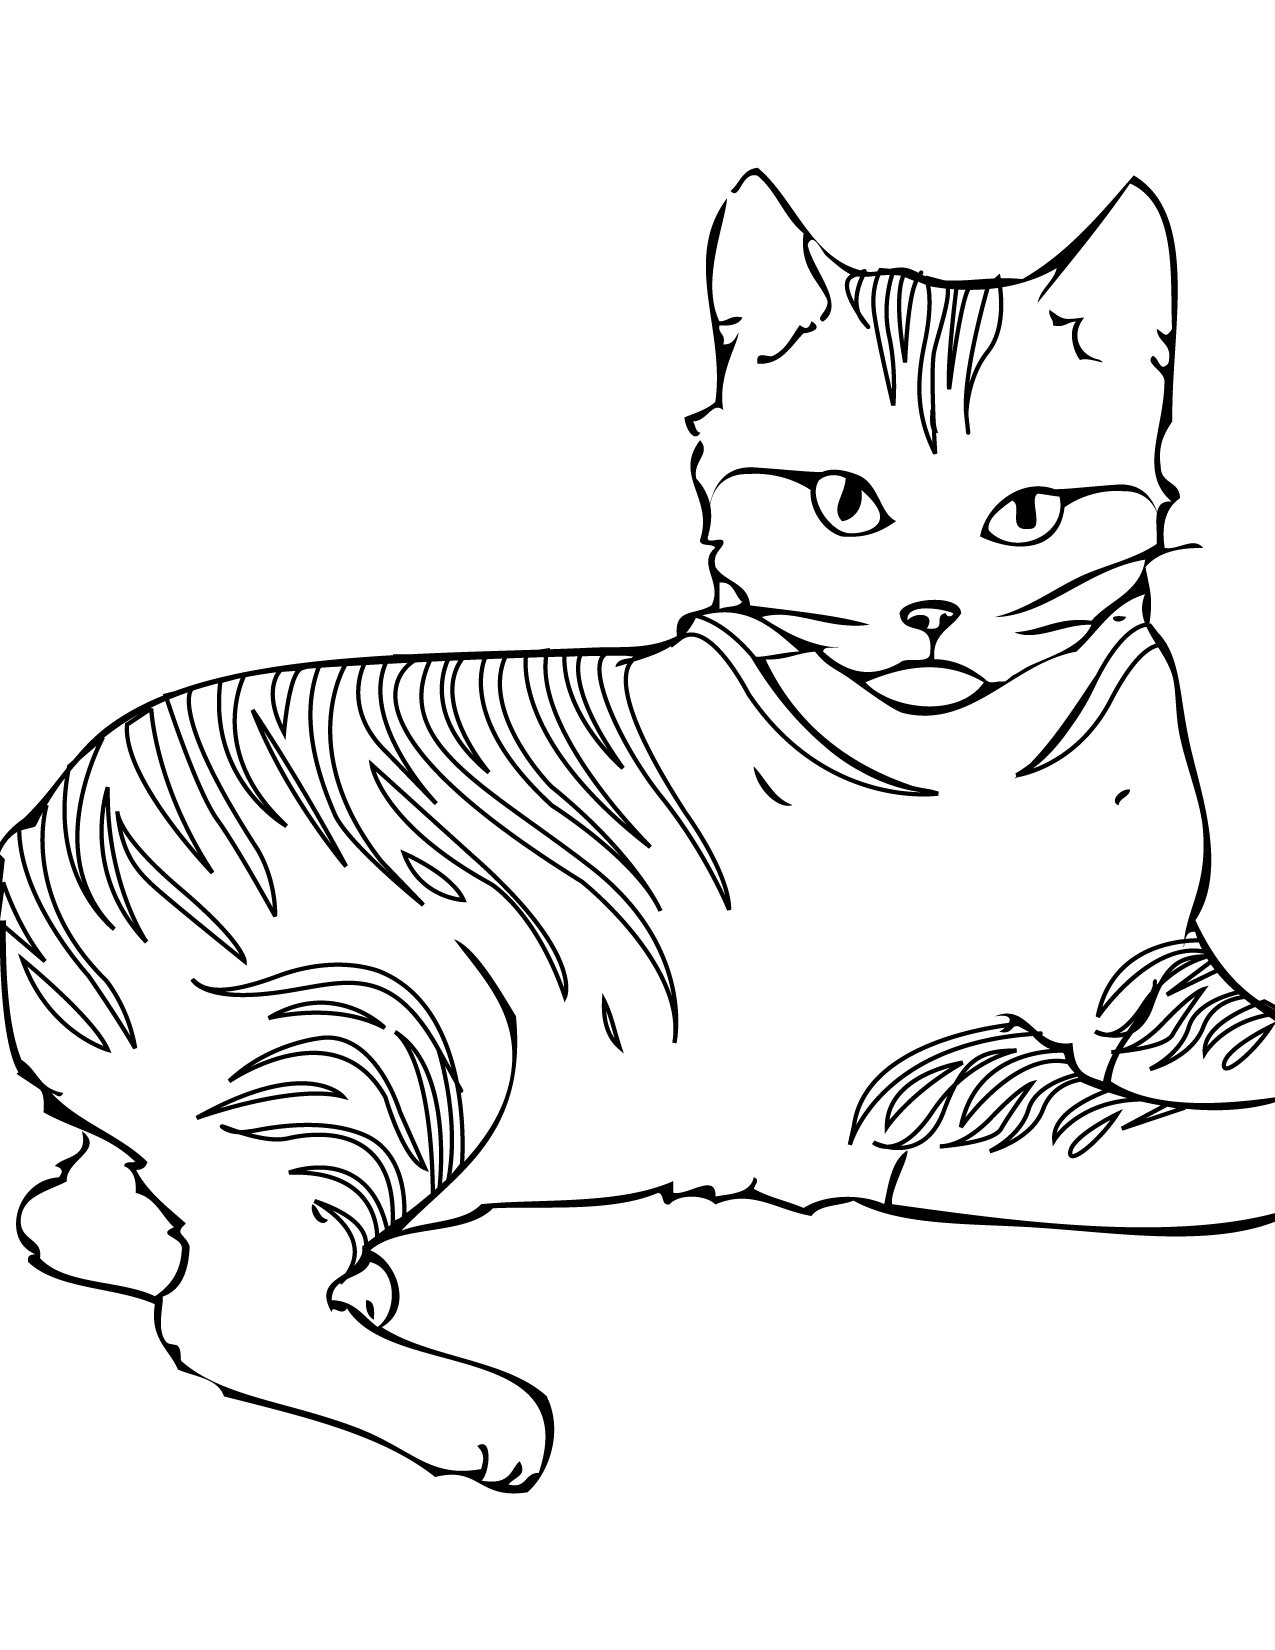 printable cat coloring pages free printable kitten coloring pages for kids best coloring pages printable cat